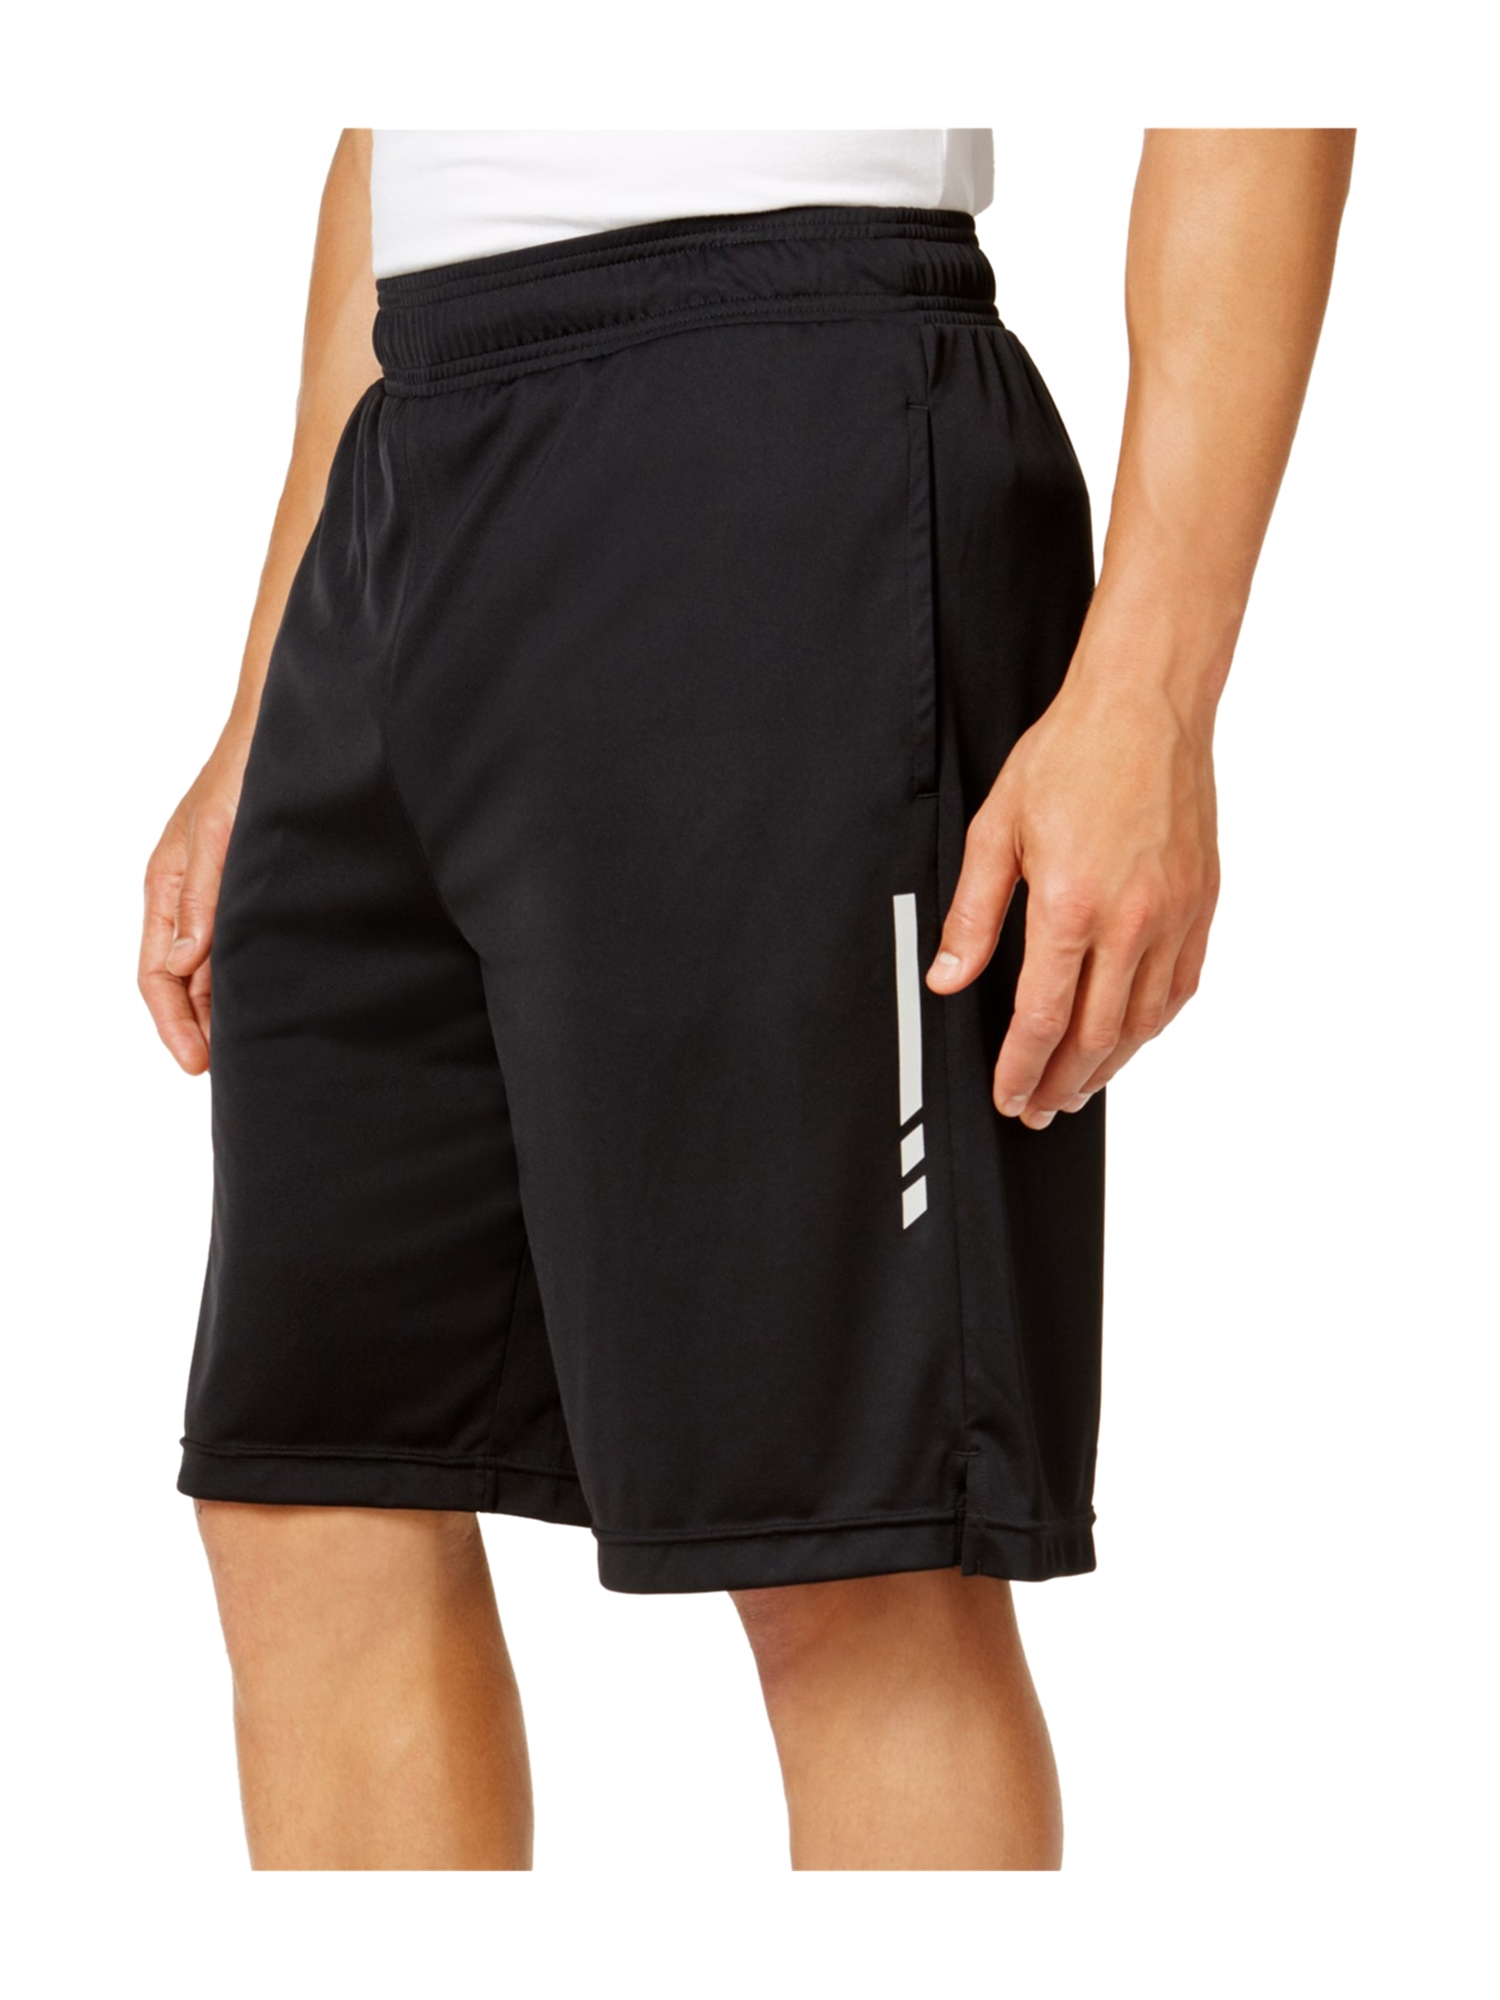 Ideology Mens Knit Training Athletic Workout Shorts